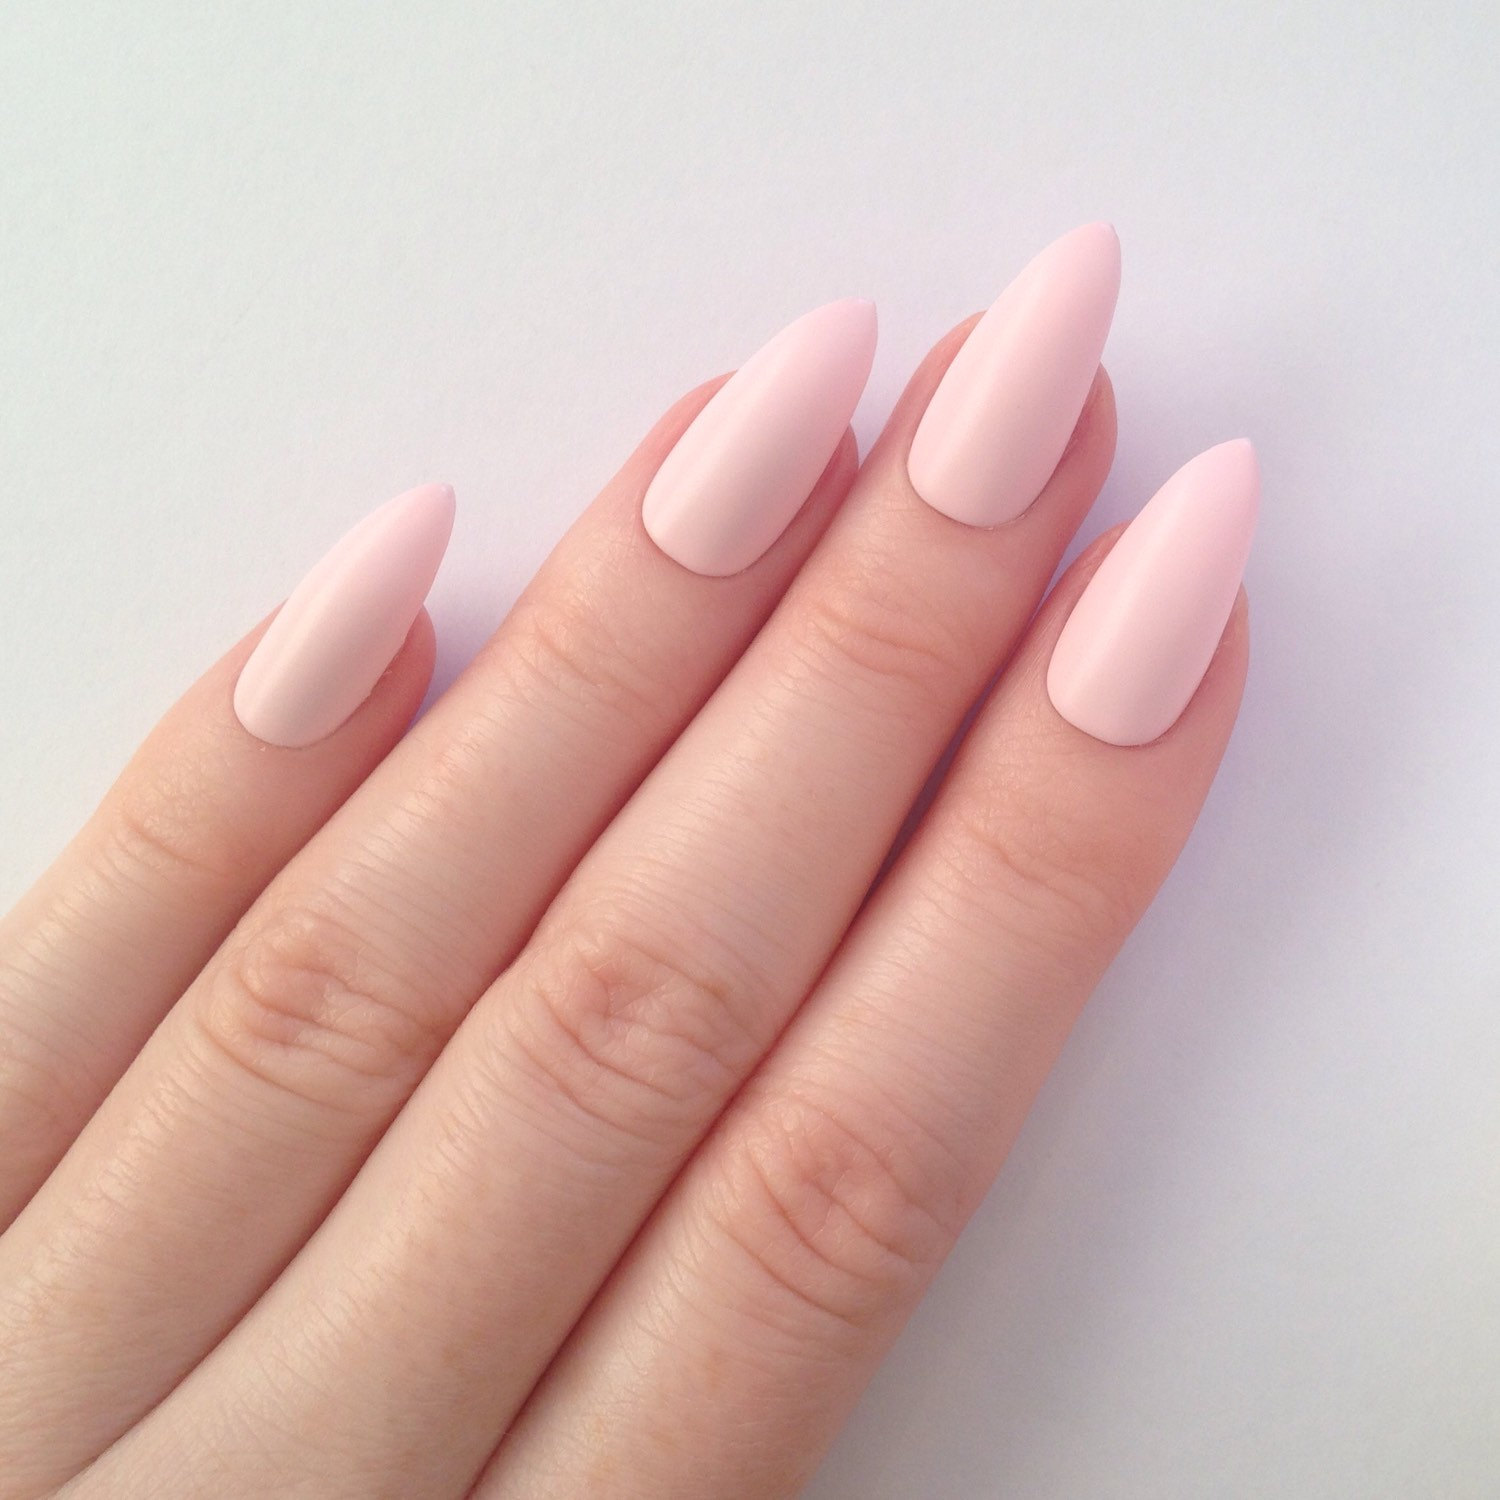 Which Kind Of Nail Art Matches Your Personality Type? | Playbuzz